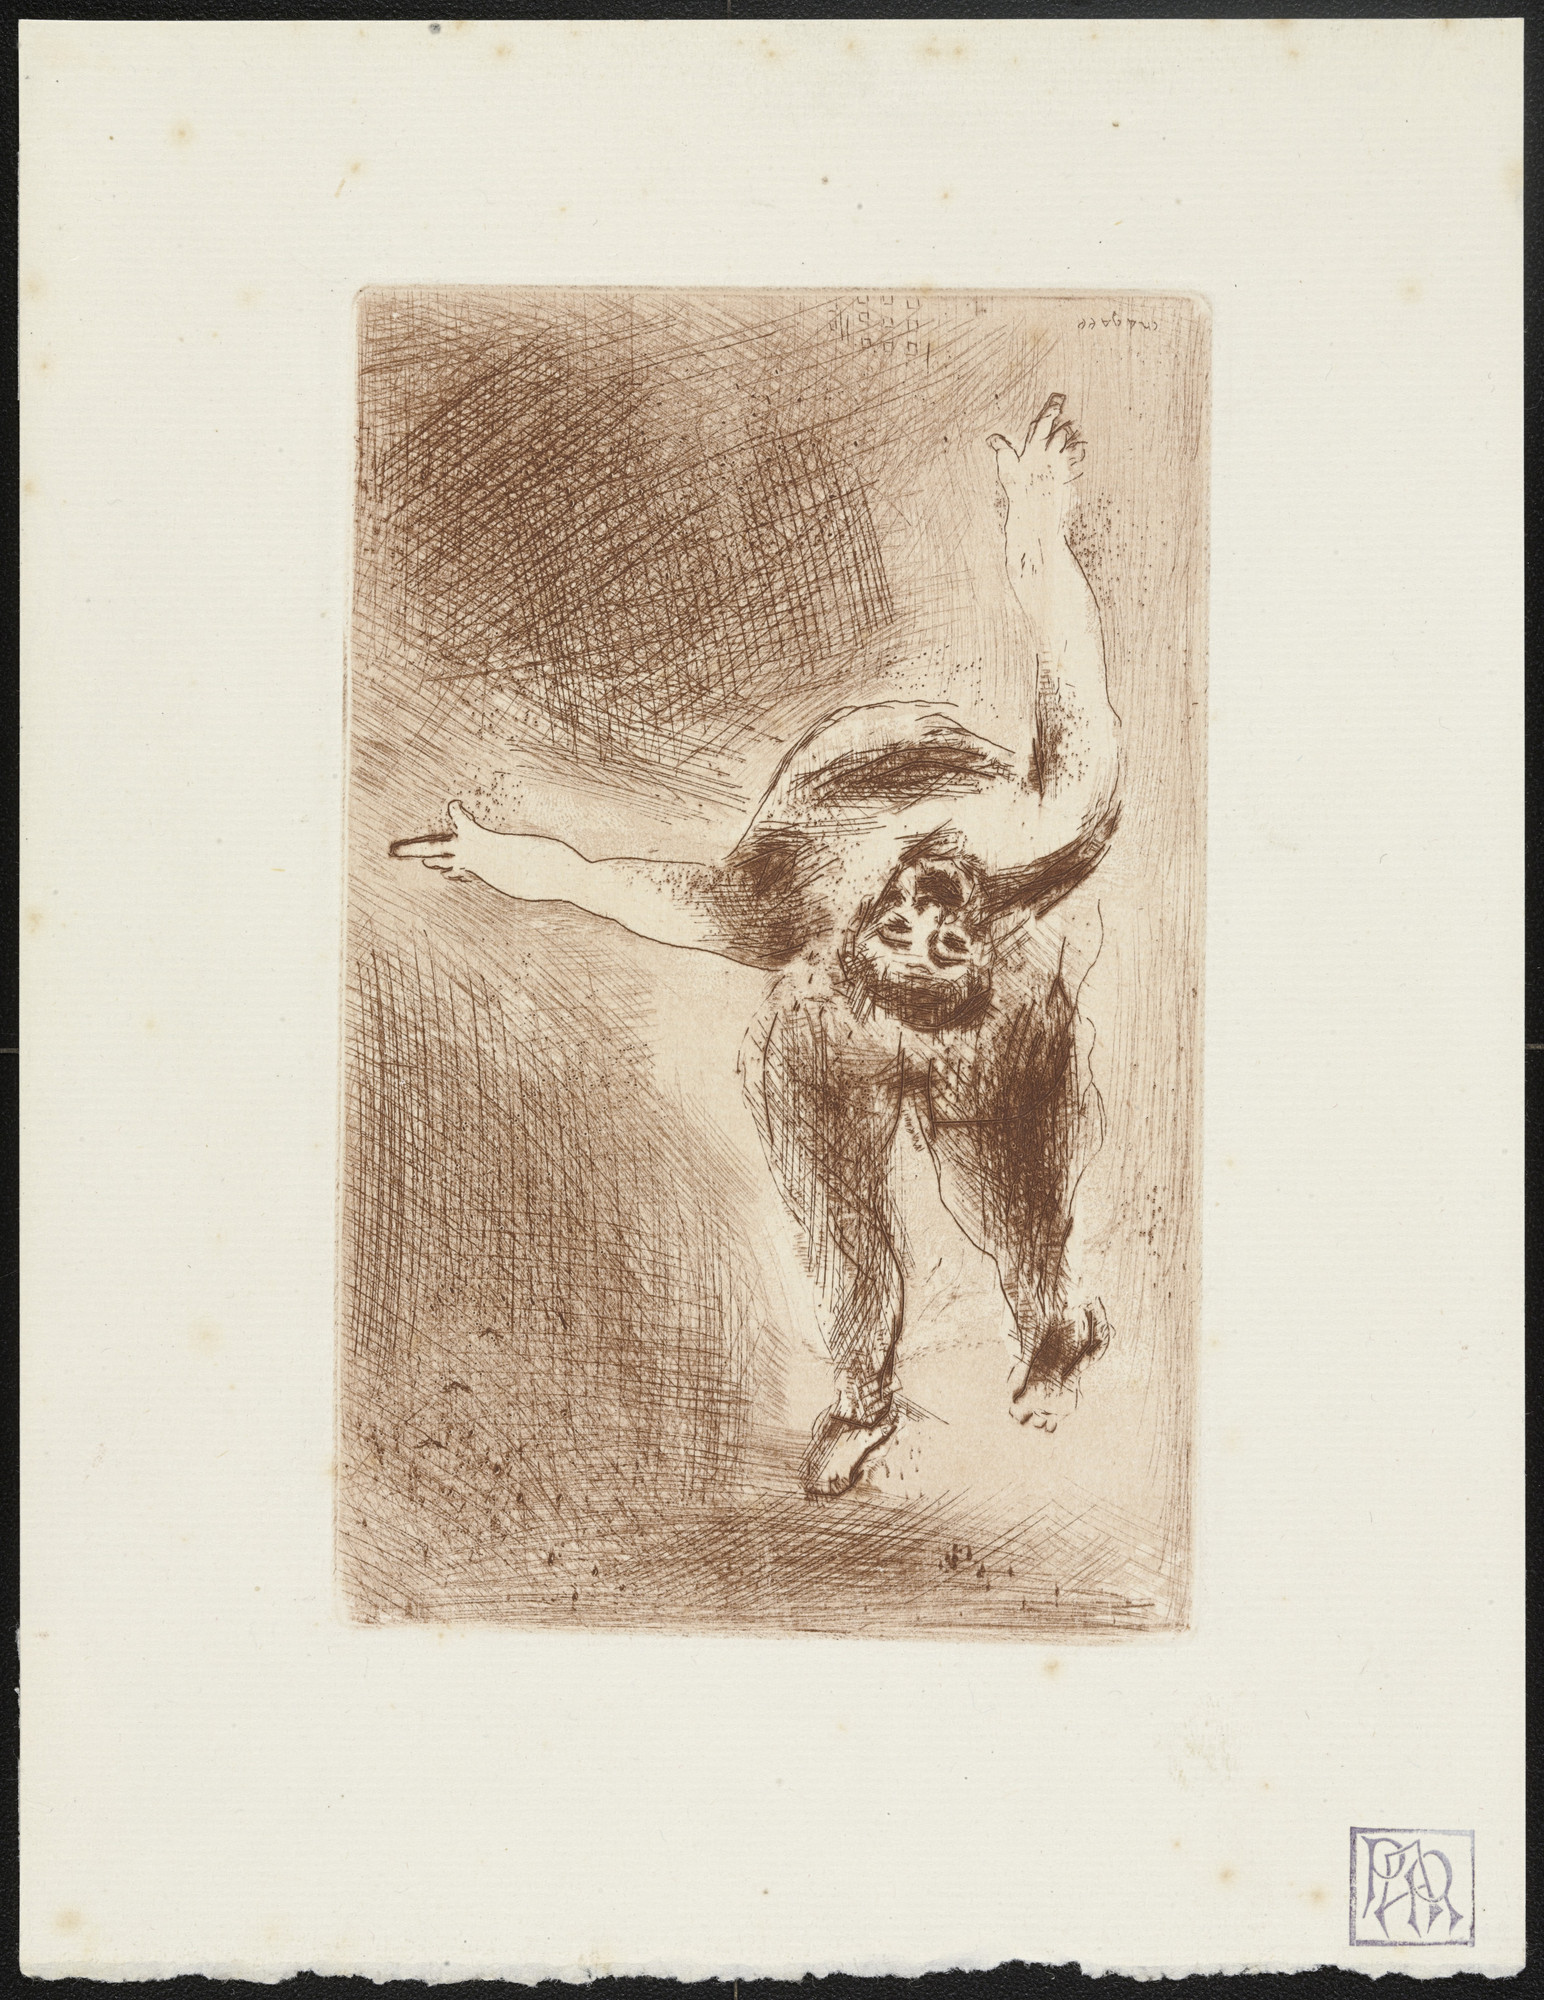 Marc Chagall. Wrath II (La Colère II) from The Seven Deadly Sins (Les Sept péchés capitaux). 1925, published 1926